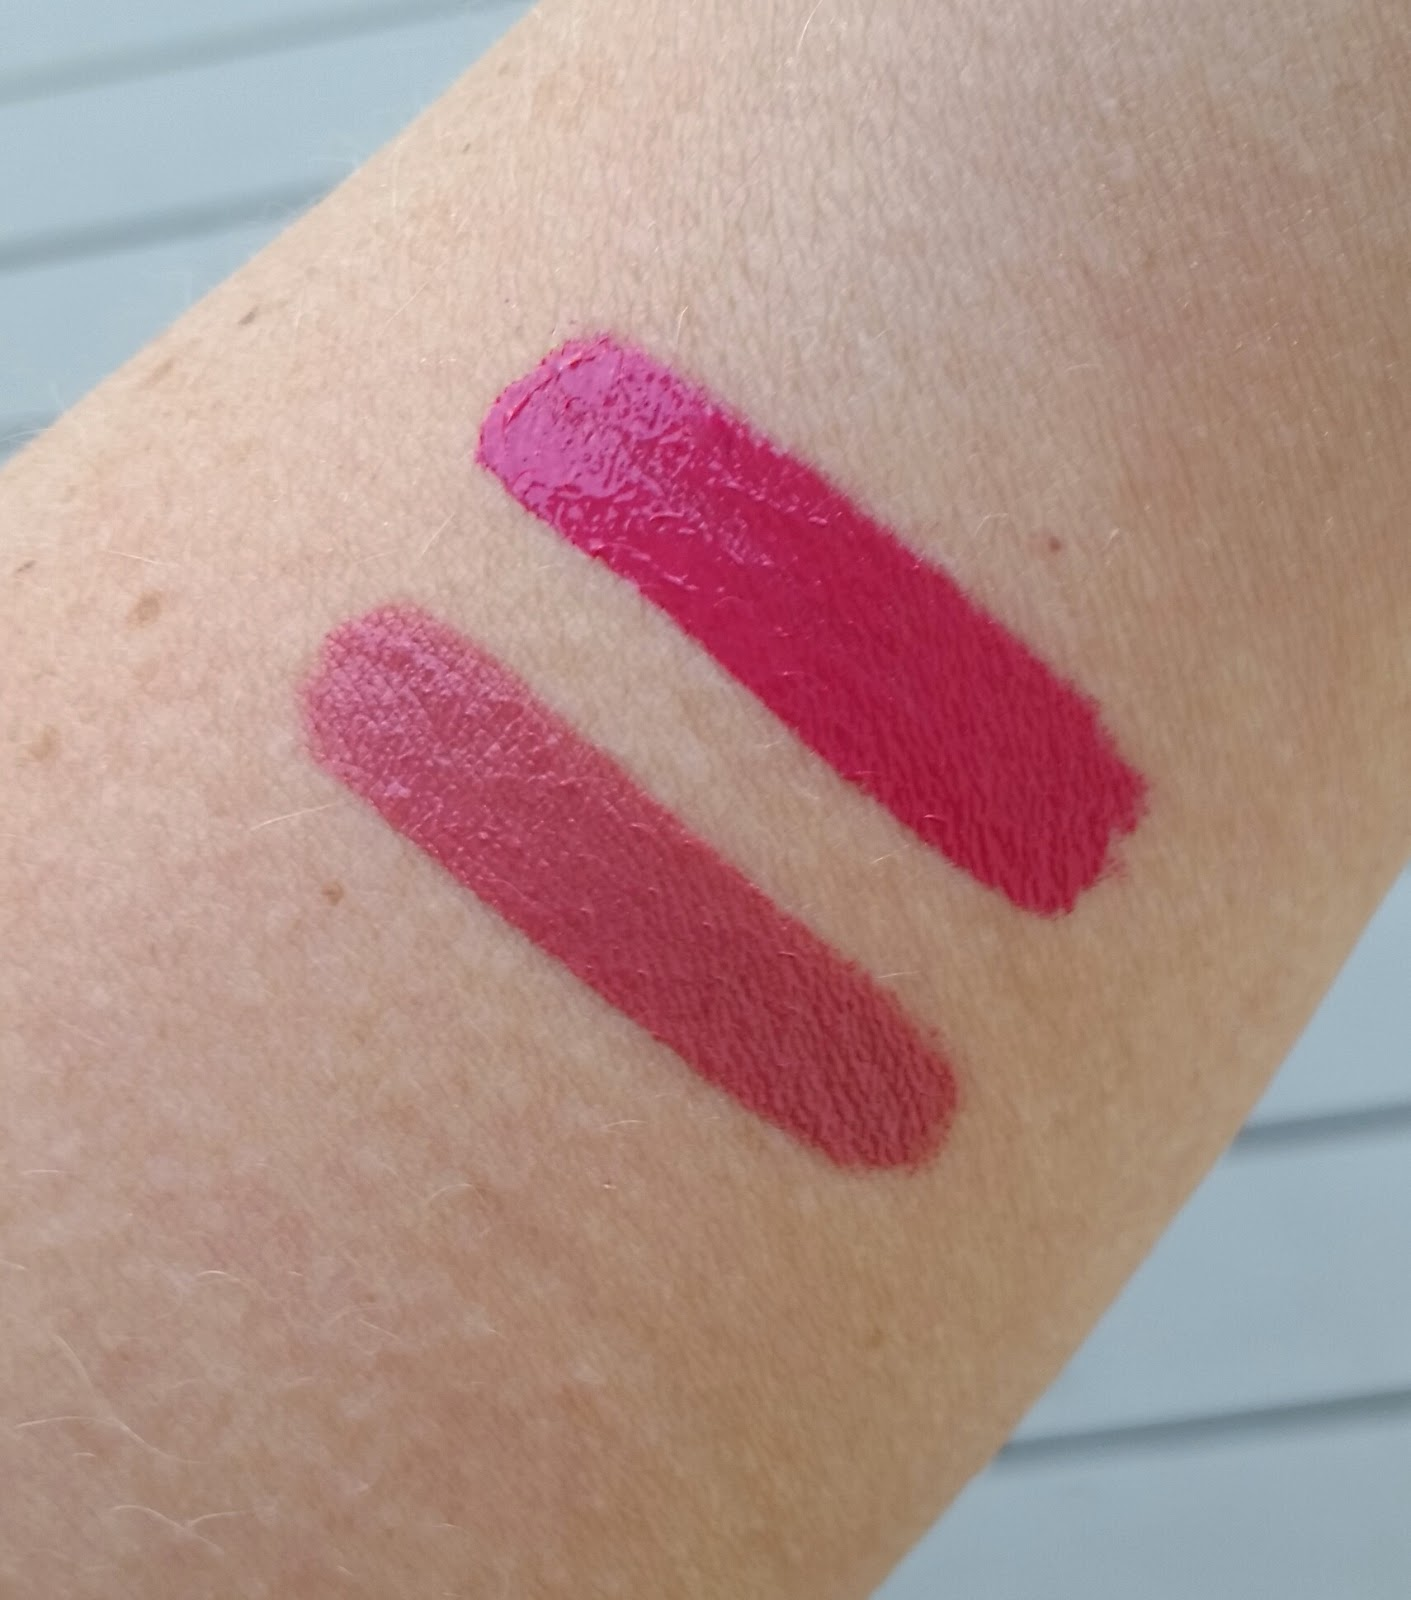 Revlon Ultra HD Matte Liquid Lipcolor Swatches